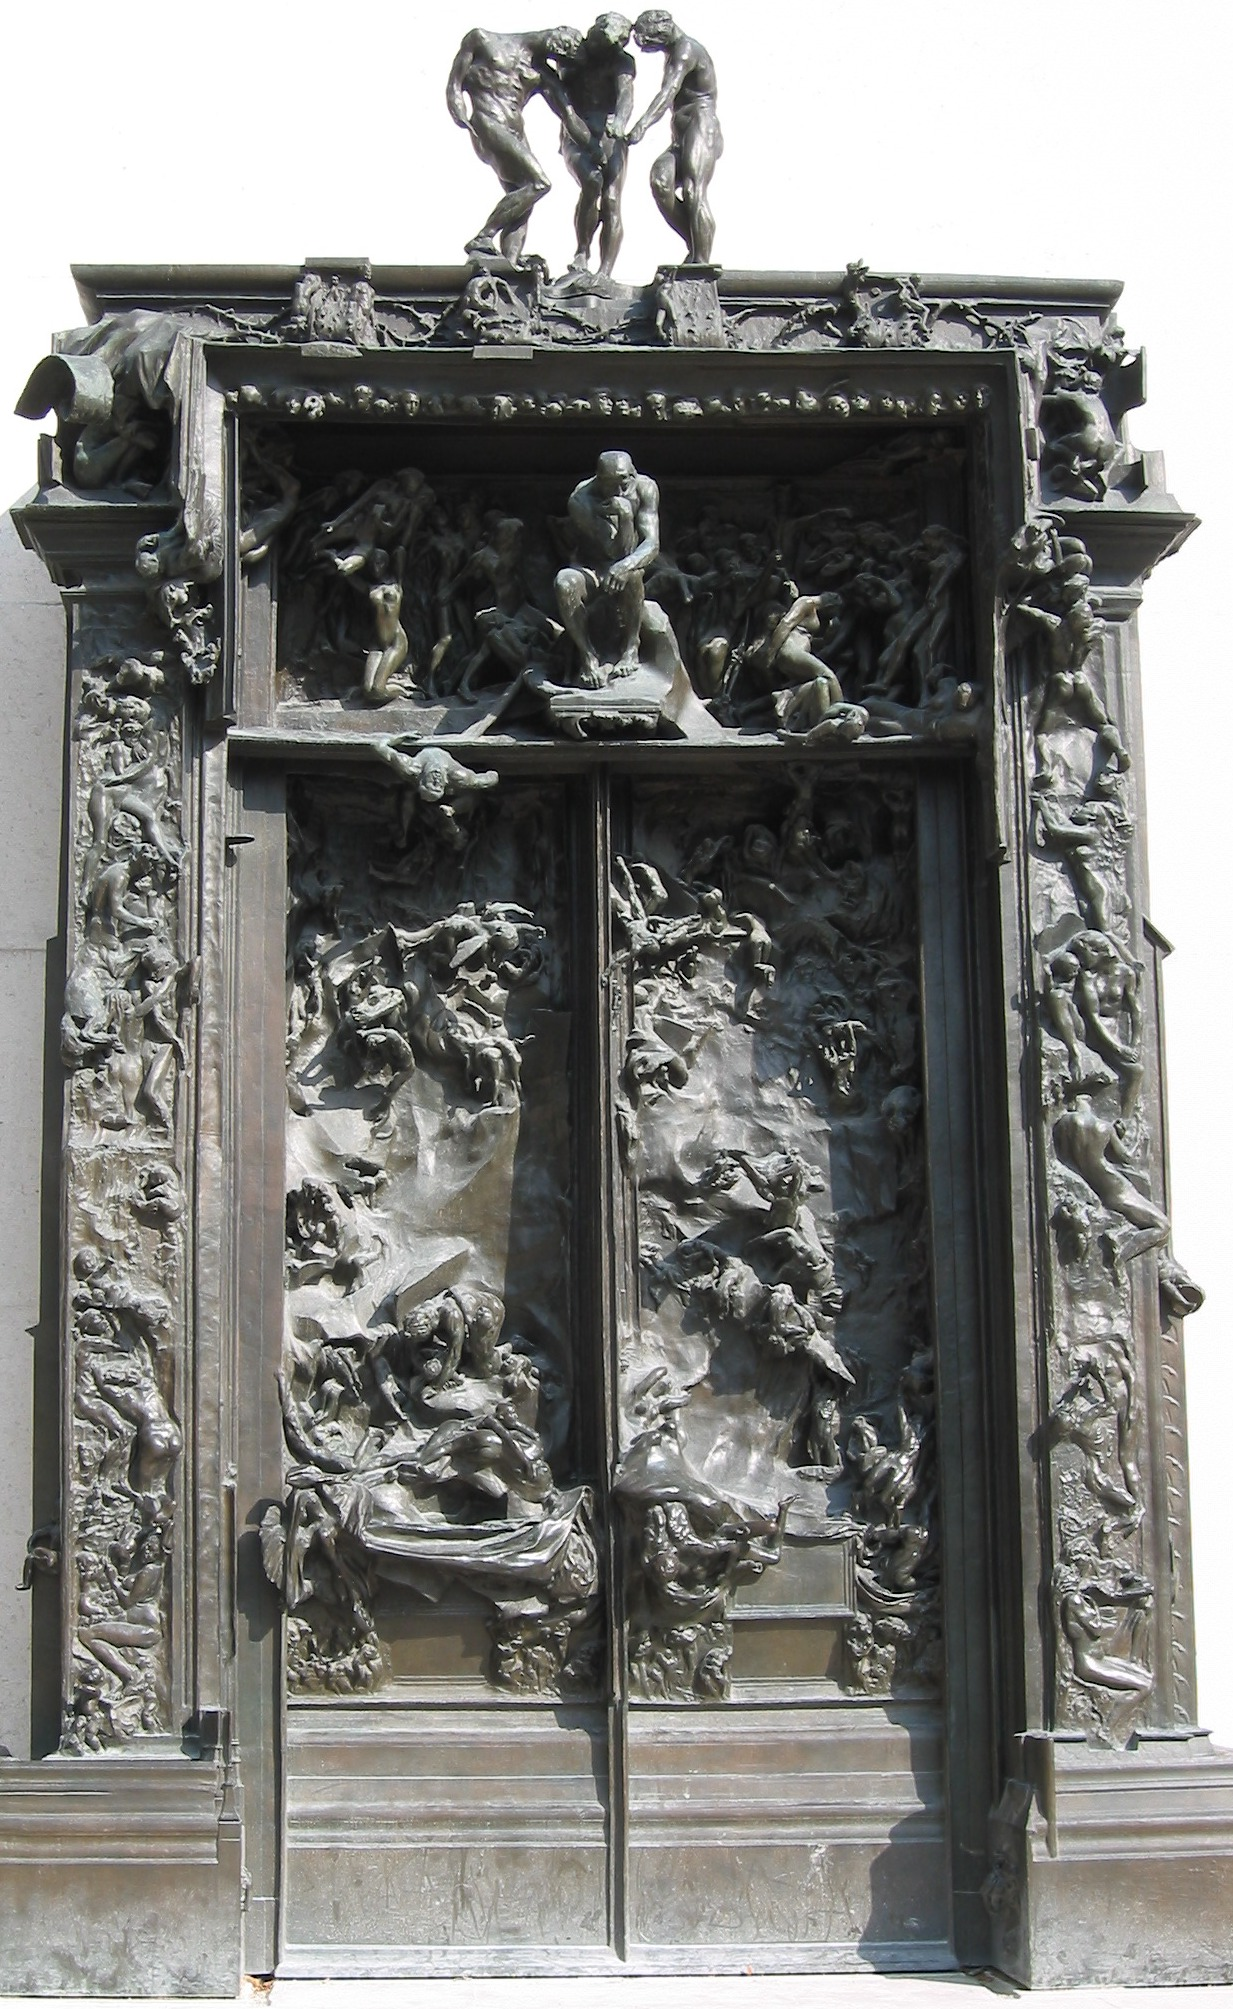 auguste-rodin-gates-of-hell